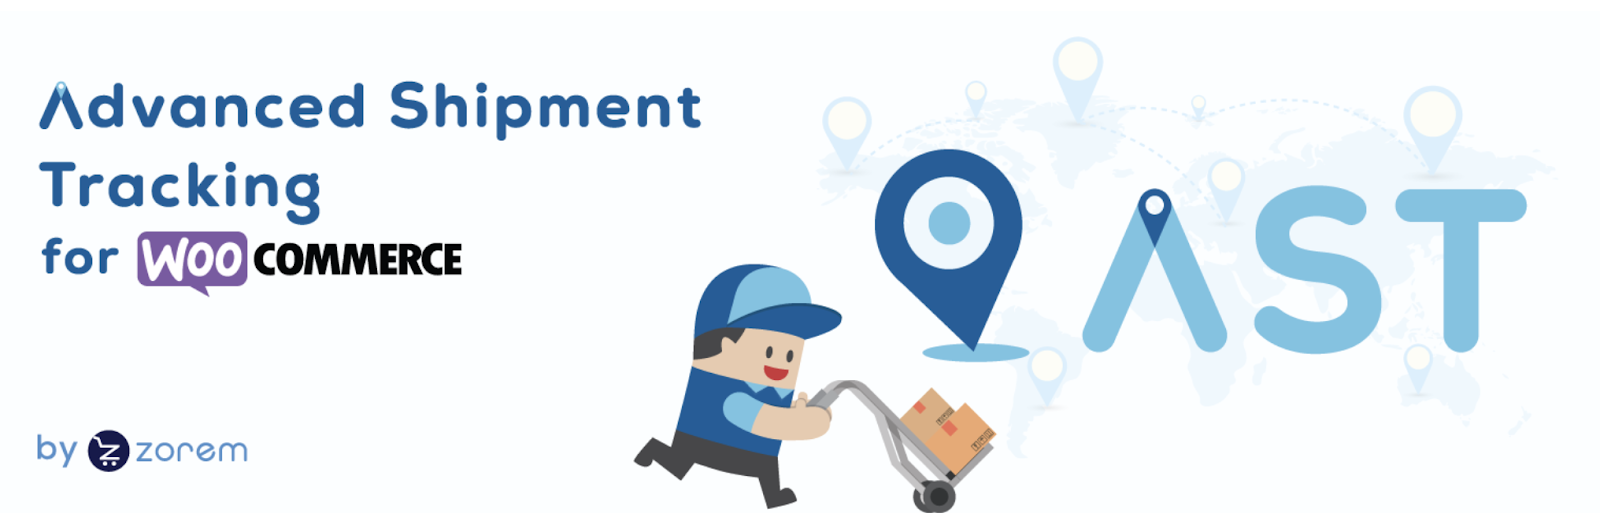 Advanced Shipment Tracking for WooCommerce plugin